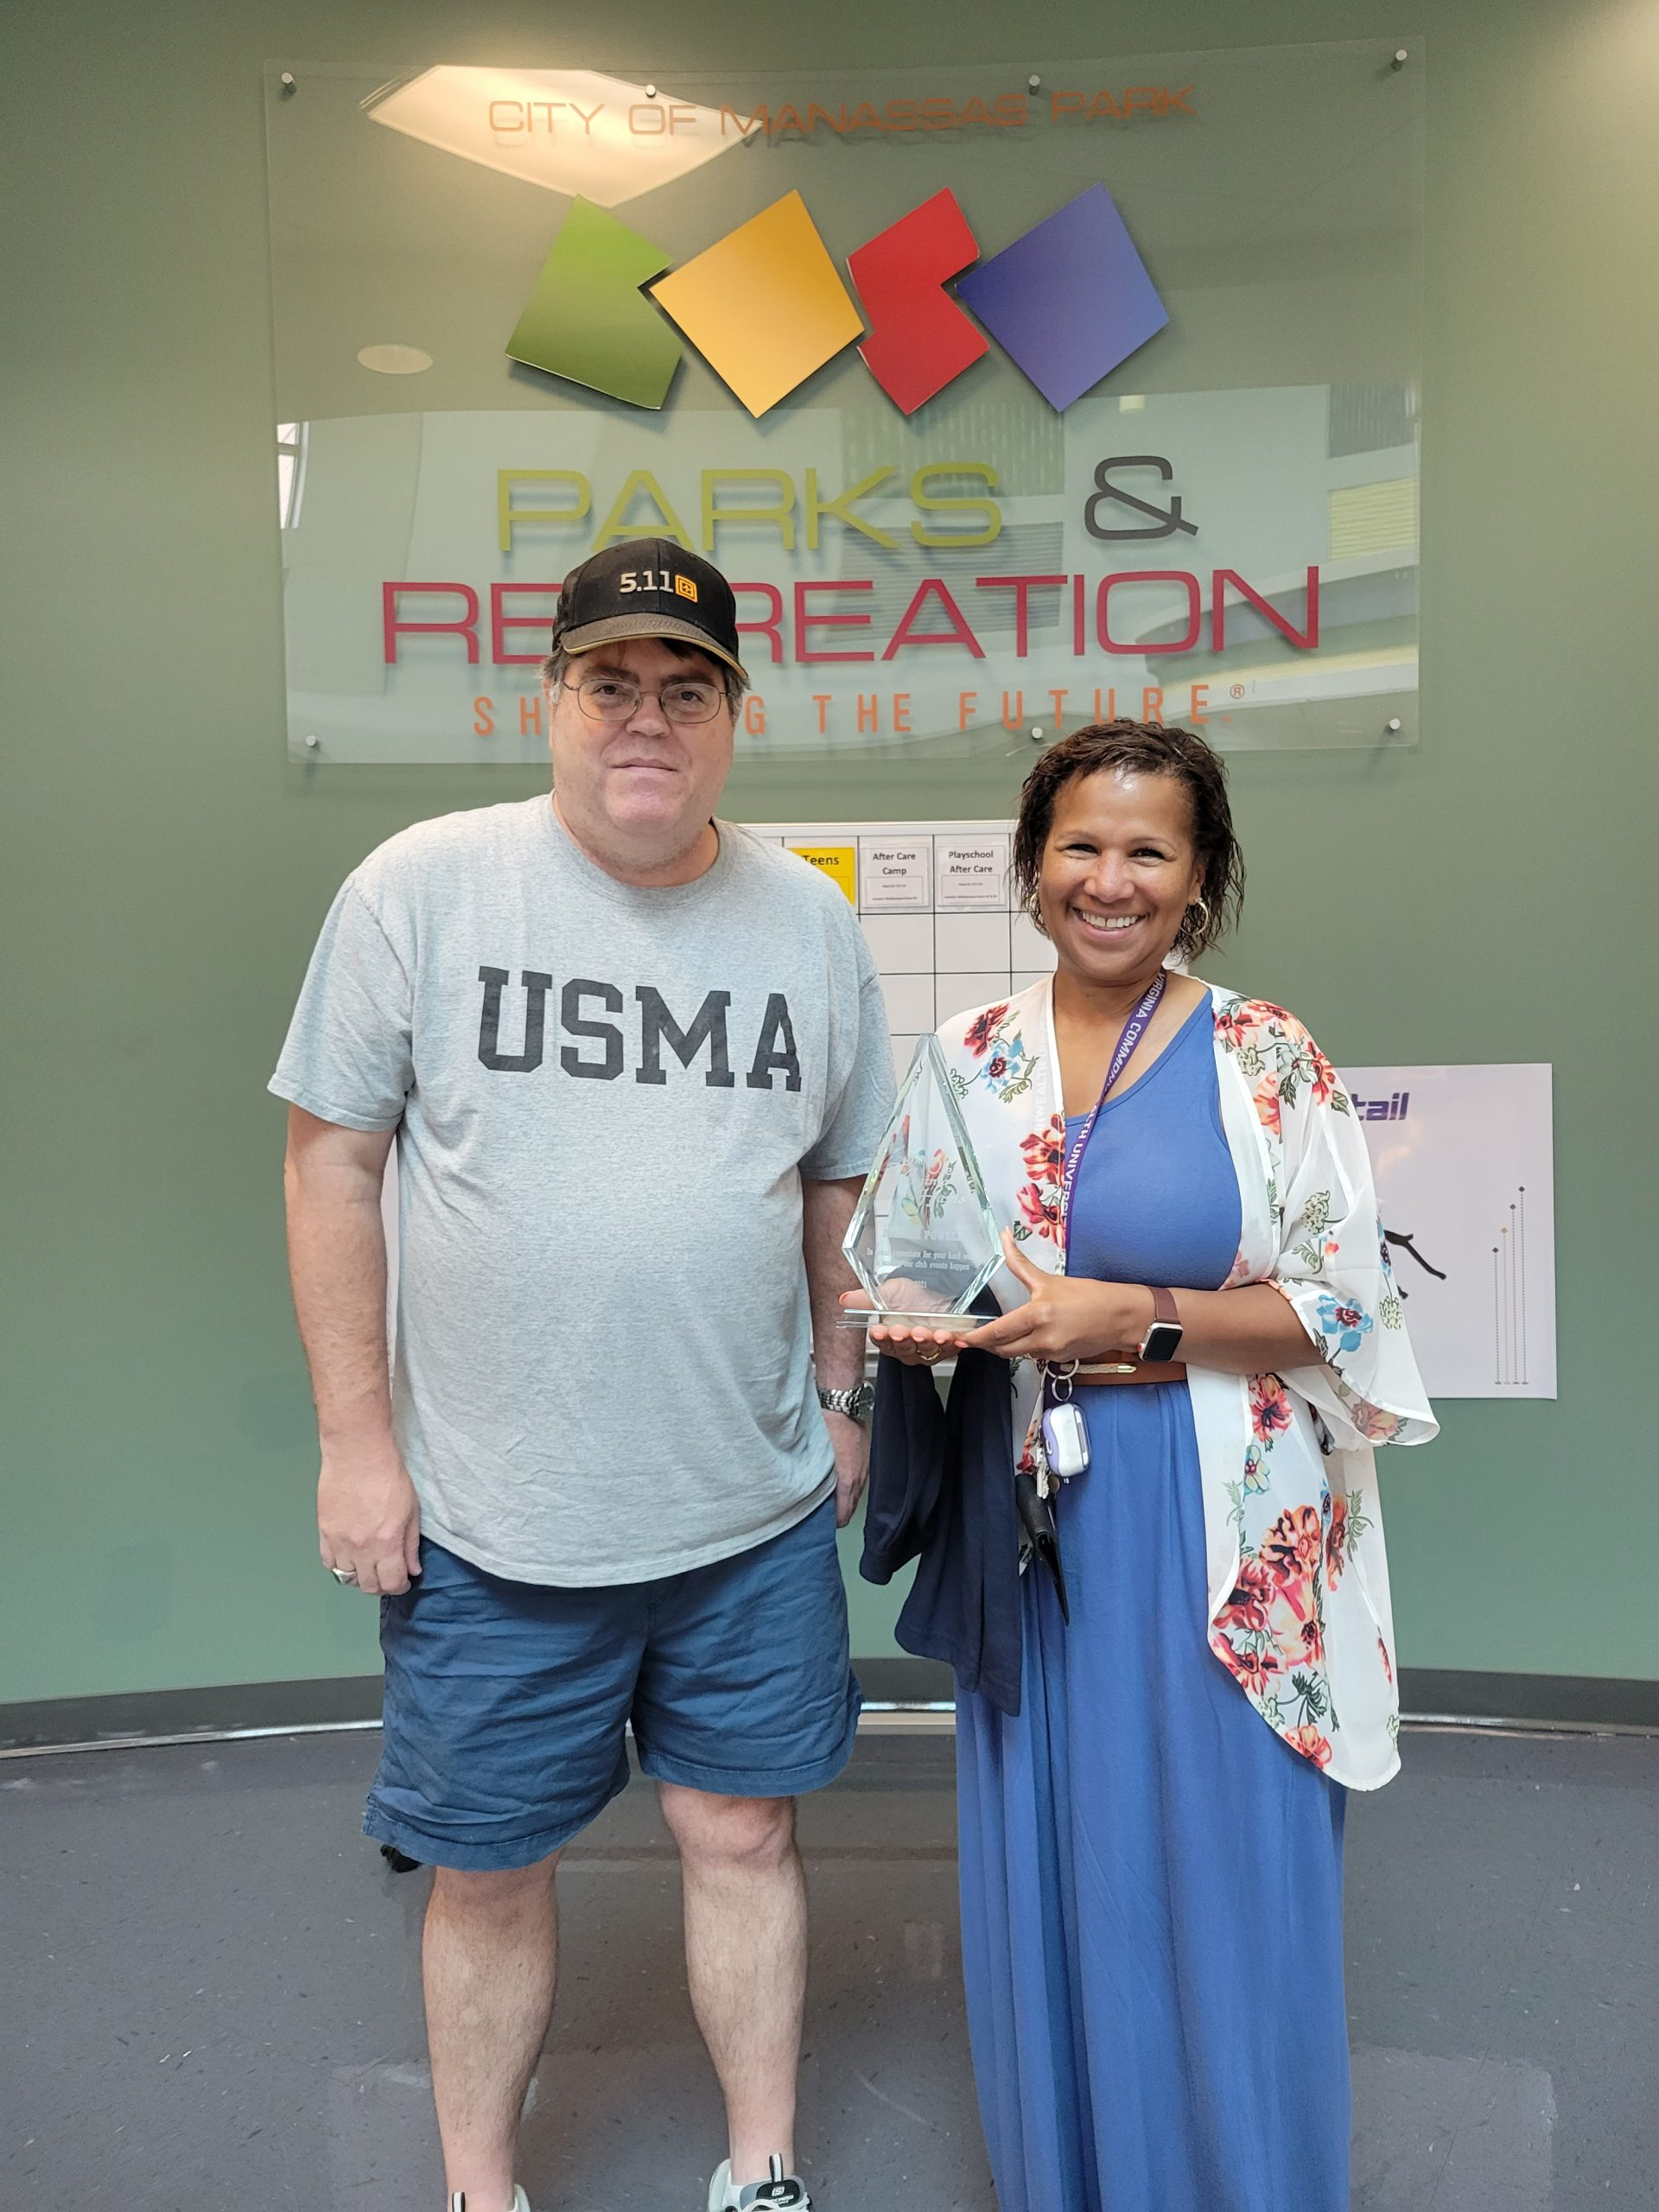 Don WA2SWX presents Award and embroidered polo shirt to Amelia Powell of Parks and Recreation division of Manassas Park